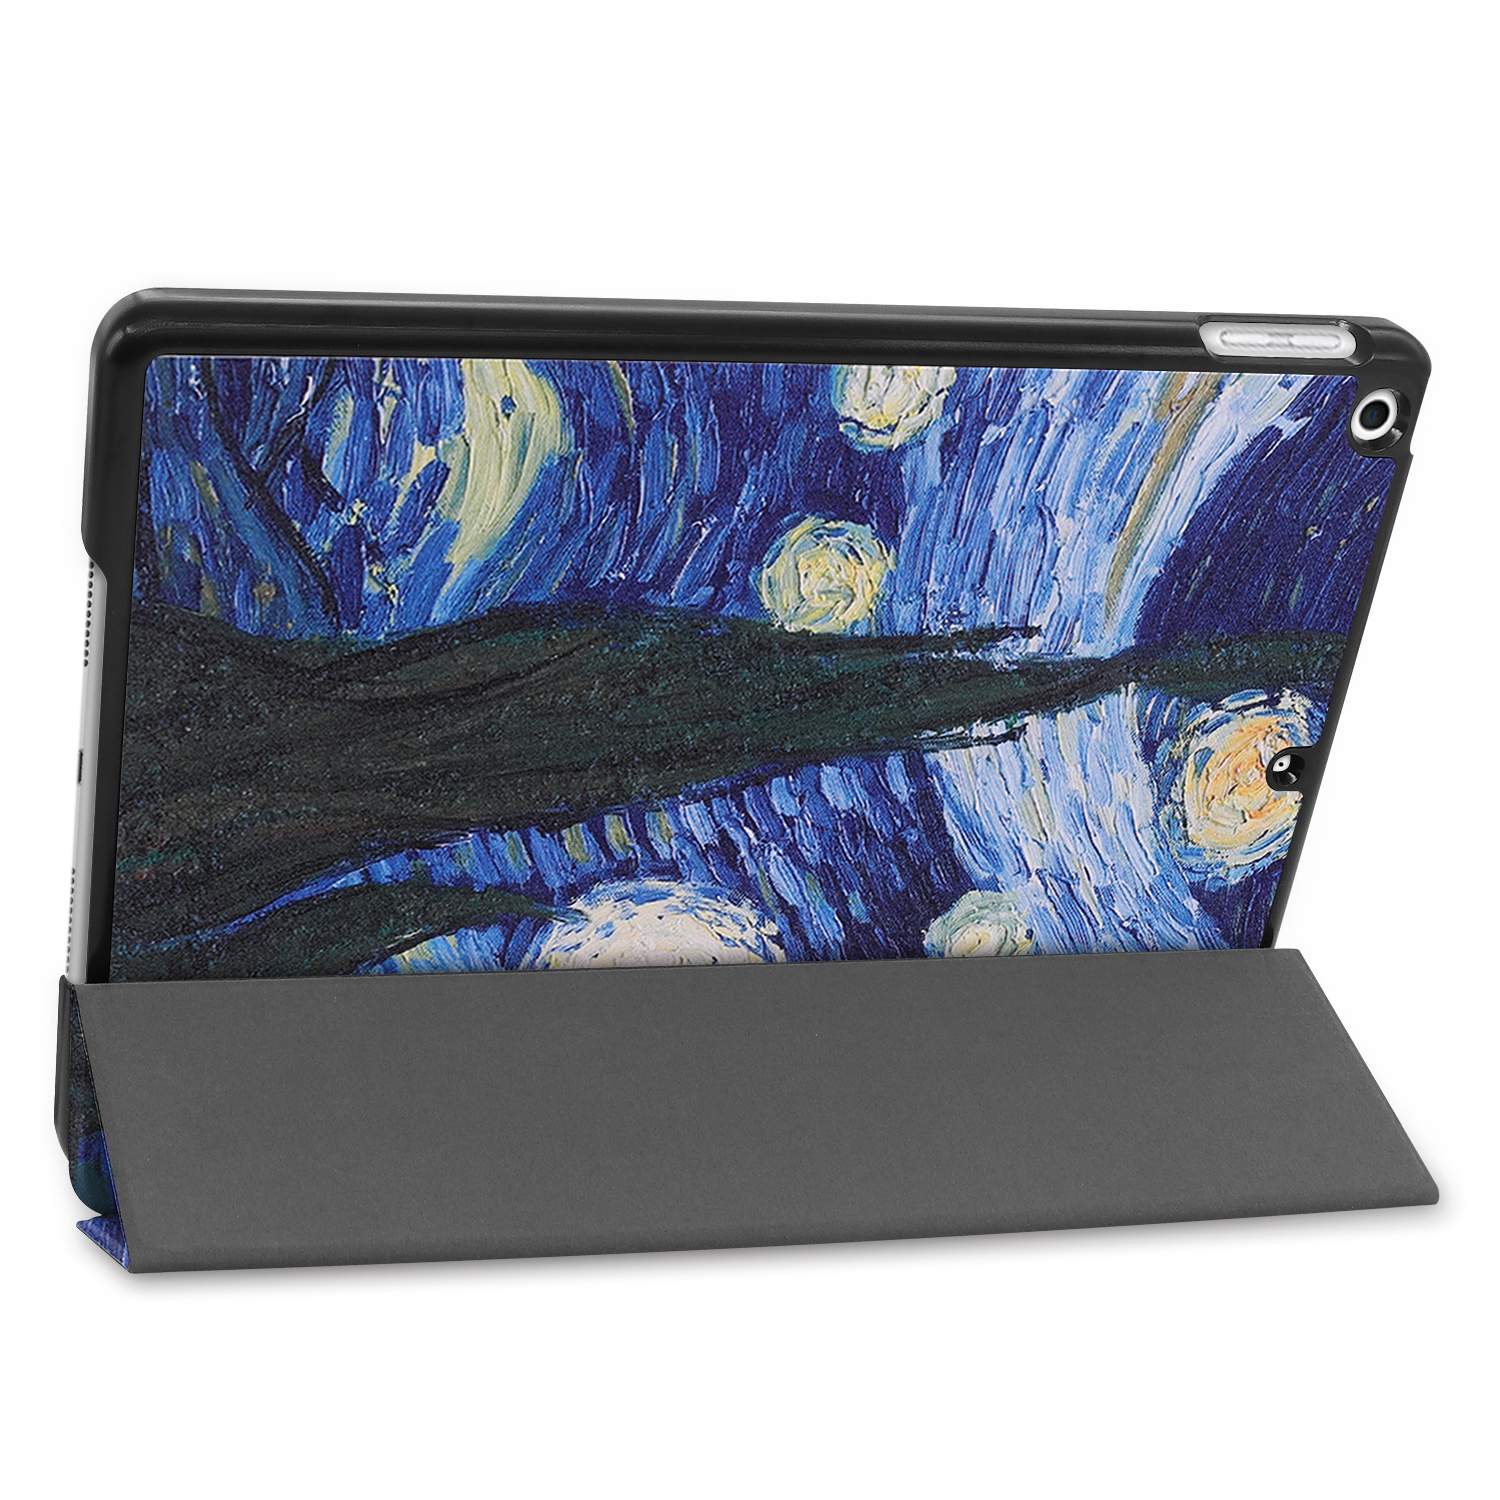 iPad Case iPad/8th/Cas Magnetic 8-8th-Generation Sleep Smart-Cover Apple for A2428/a2429